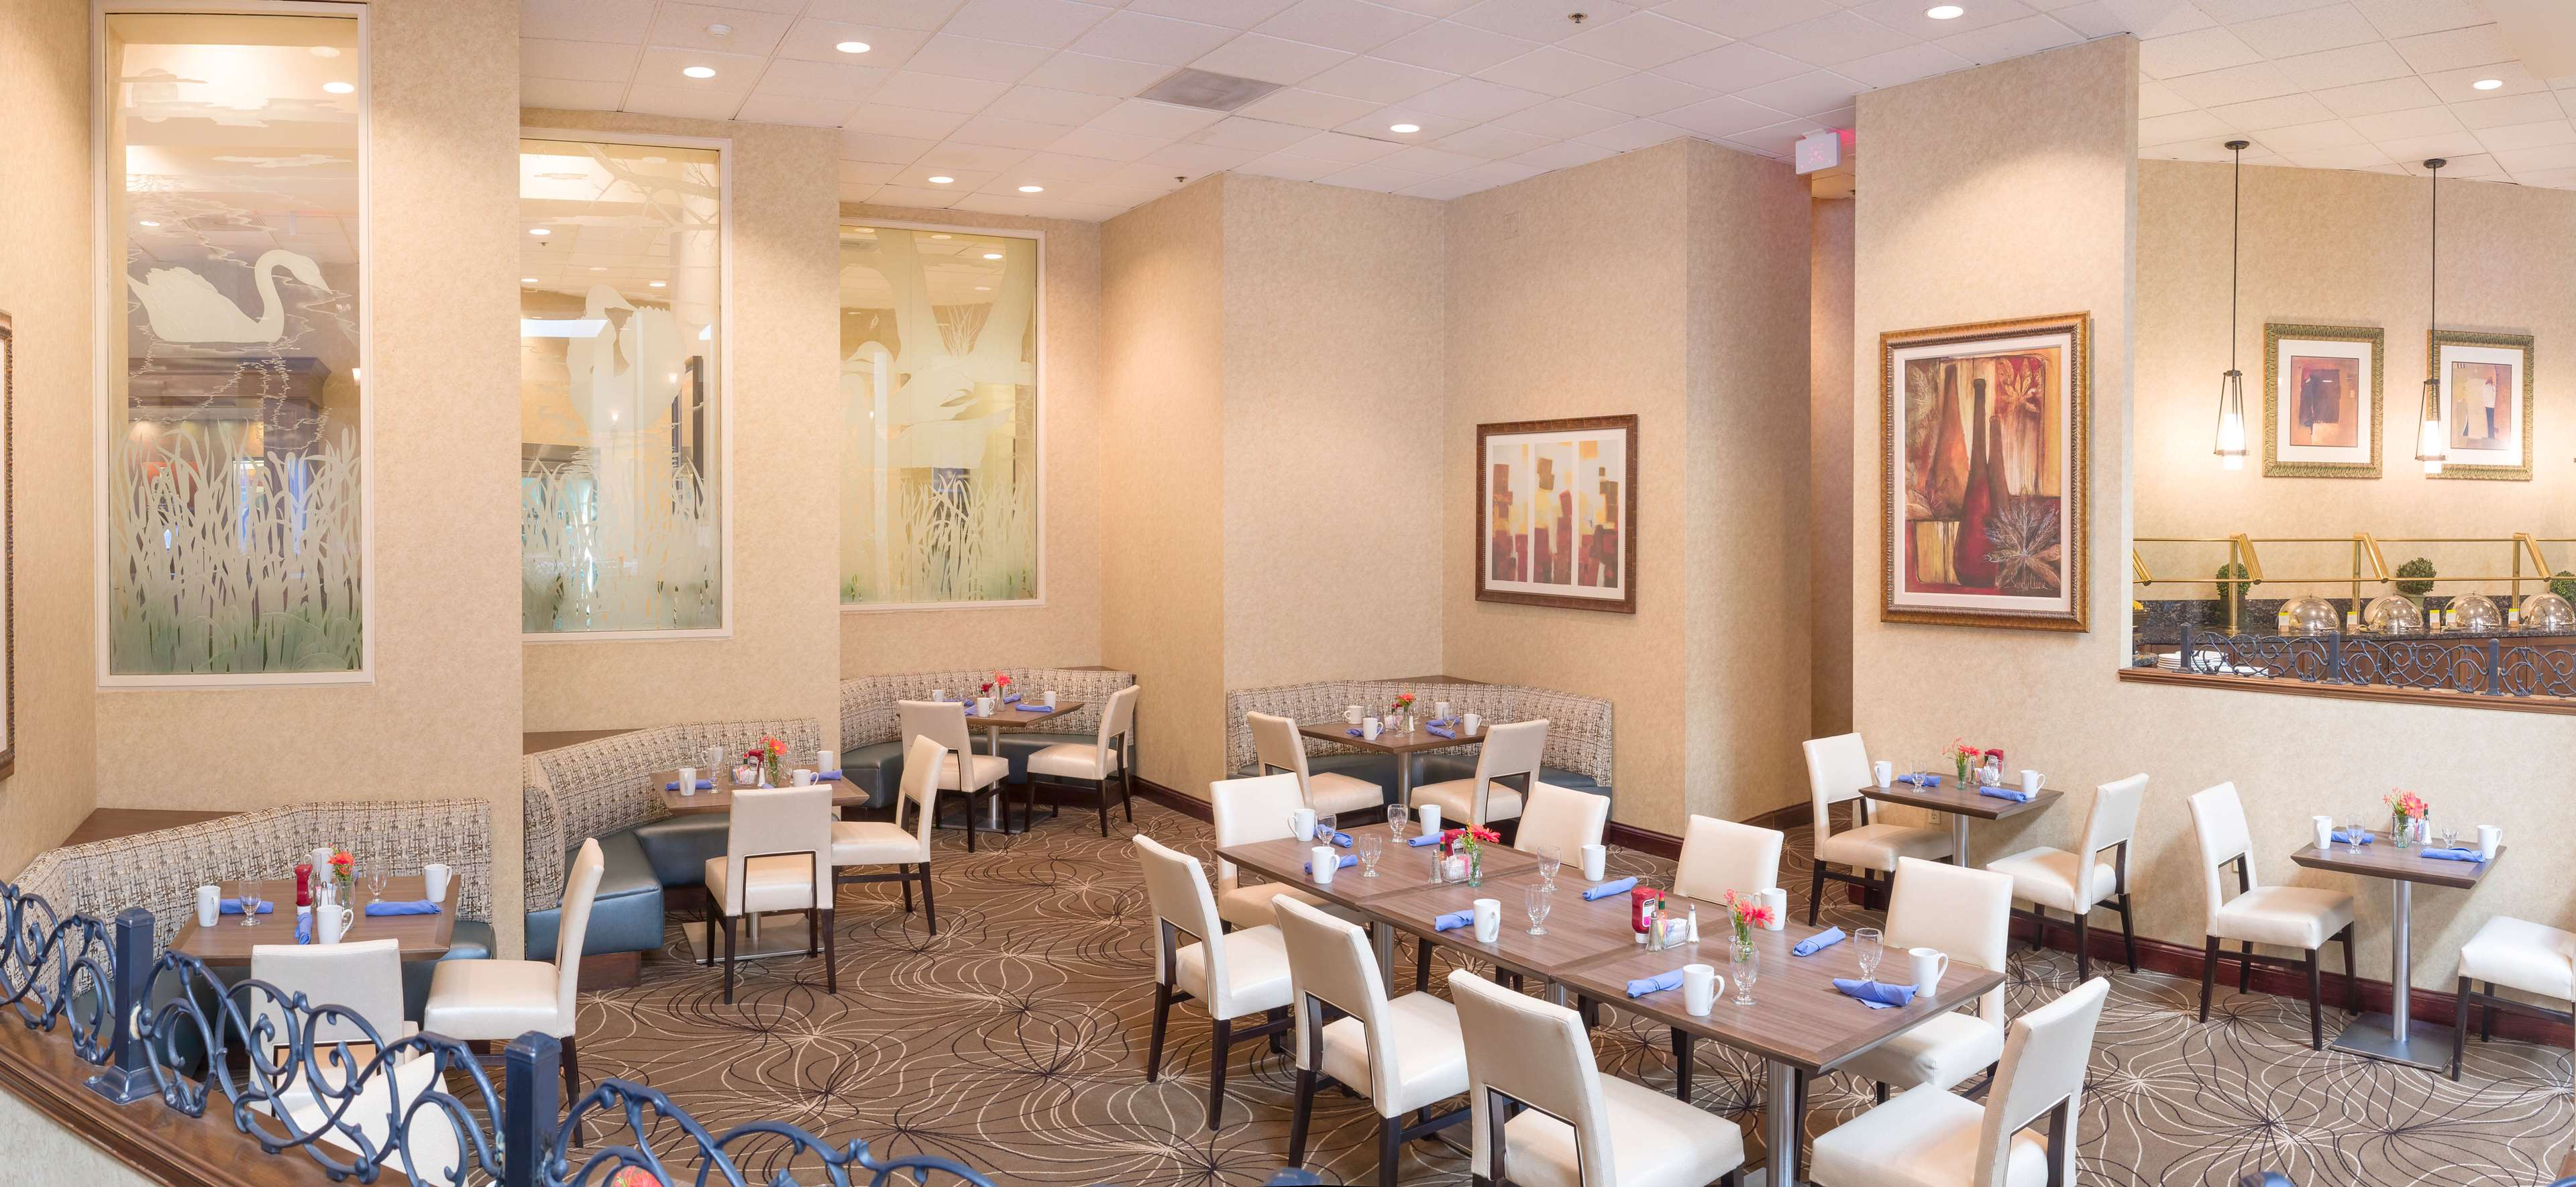 DoubleTree by Hilton Hotel Boston - Milford image 7